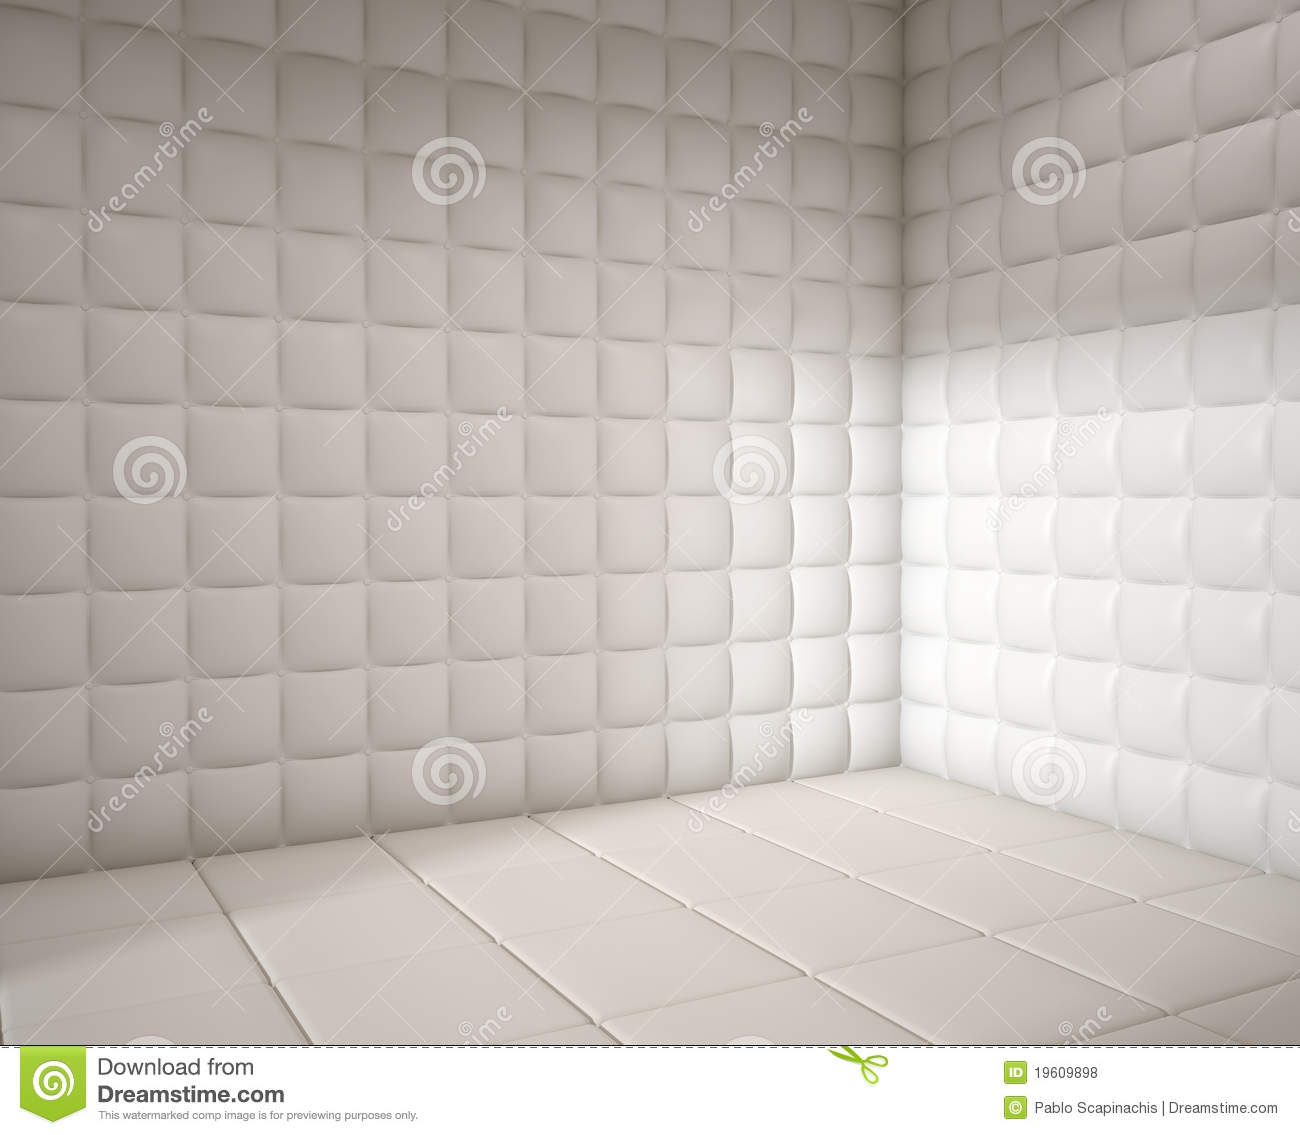 Images of Padded Room   1300x1135